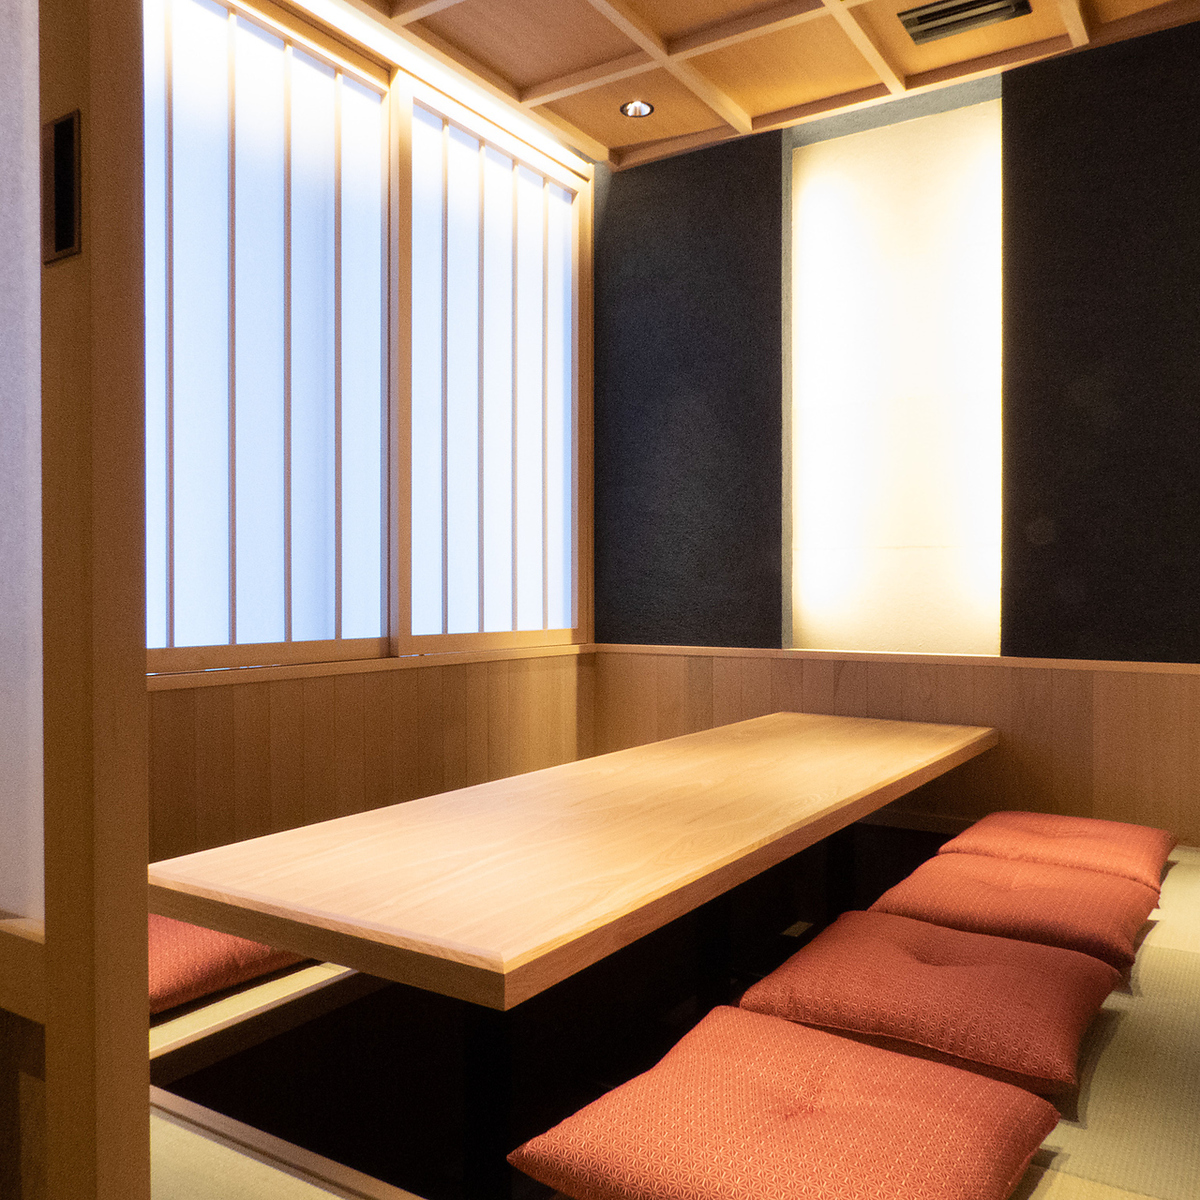 2F ... Completely relaxing in a private room Dining seats for 8 people in a relaxing space.It is perfect for corporate banquets, entertainment, hospitality to people outside the prefecture.Please take off your shoes on 1st floor and come up.